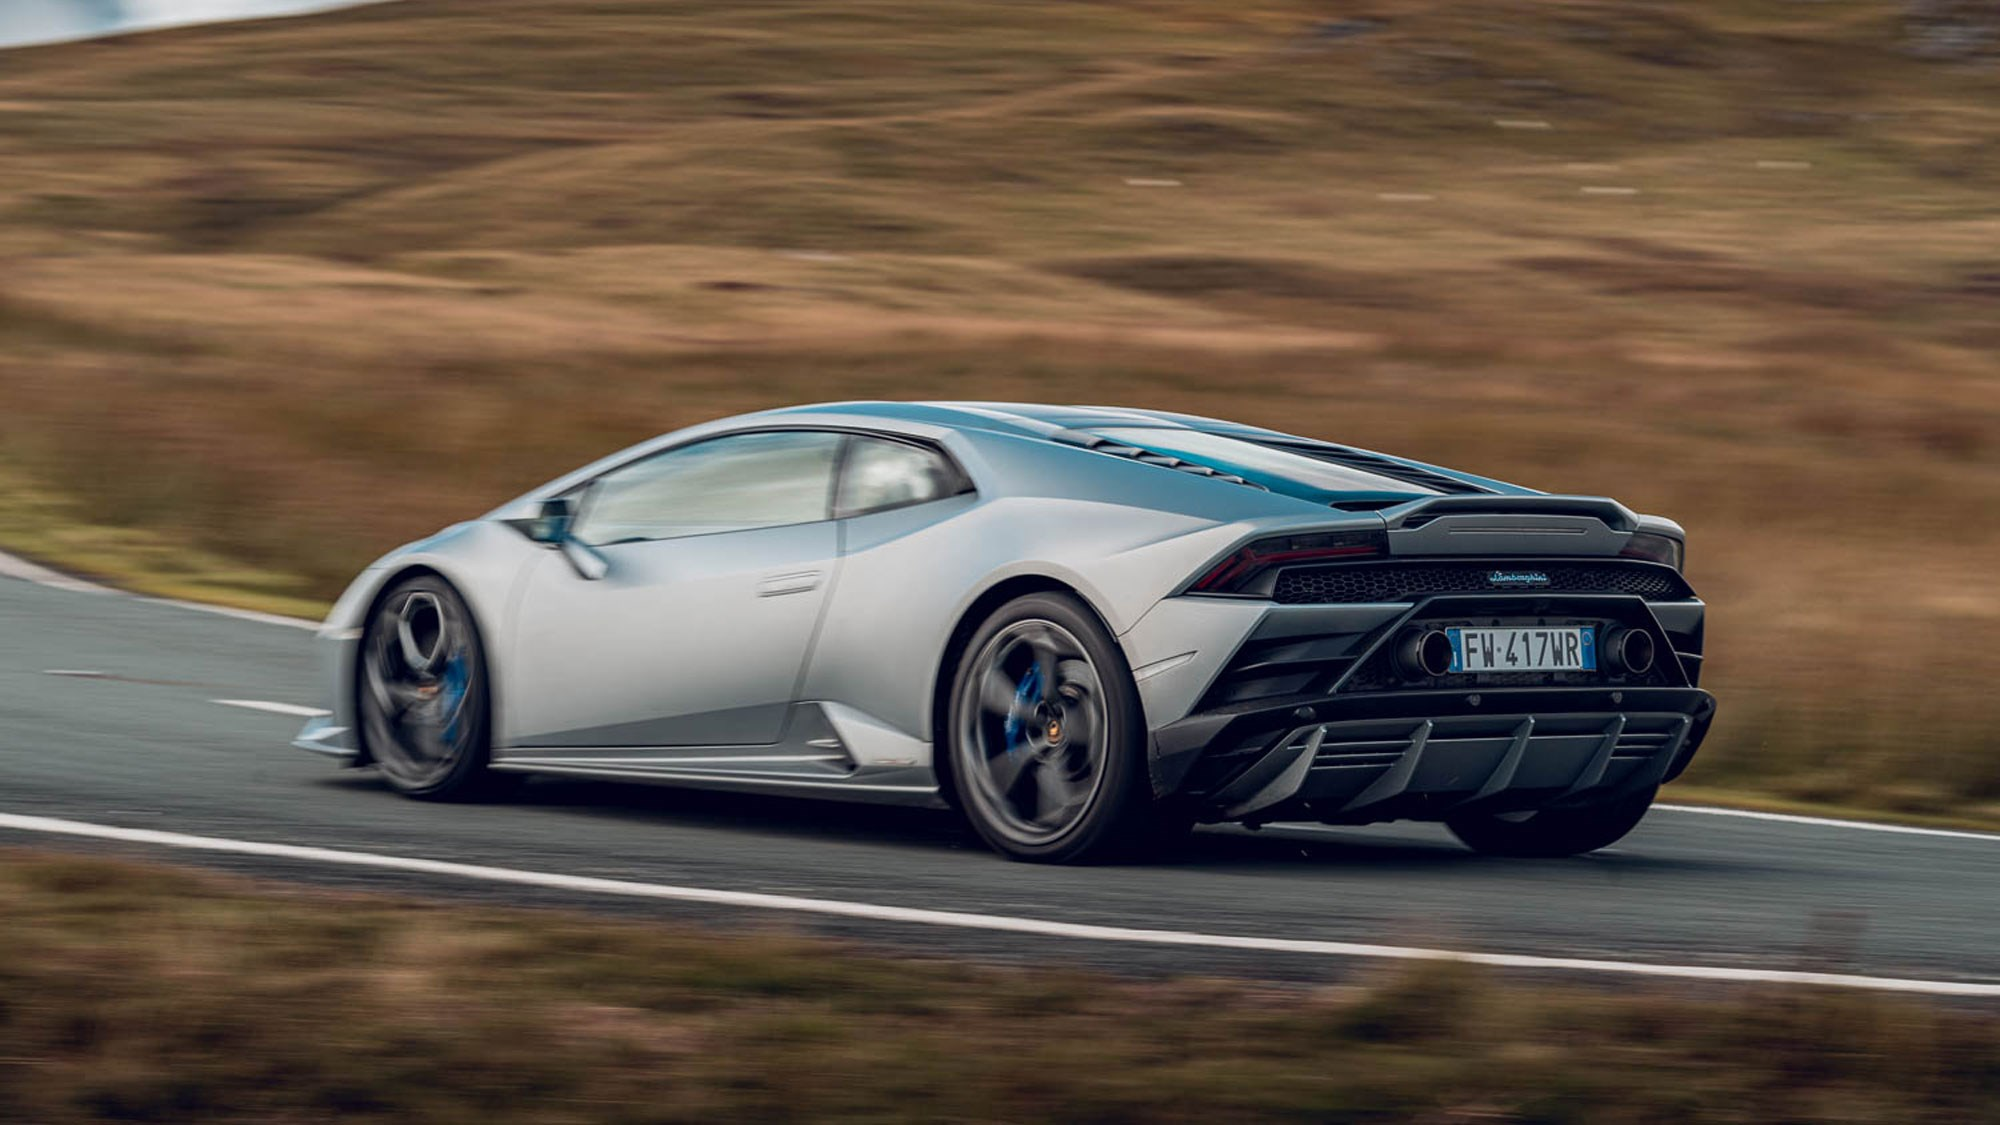 Super Cars For Sale >> Best Supercars 2019 Uk The Most Exciting And Exotic Cars On